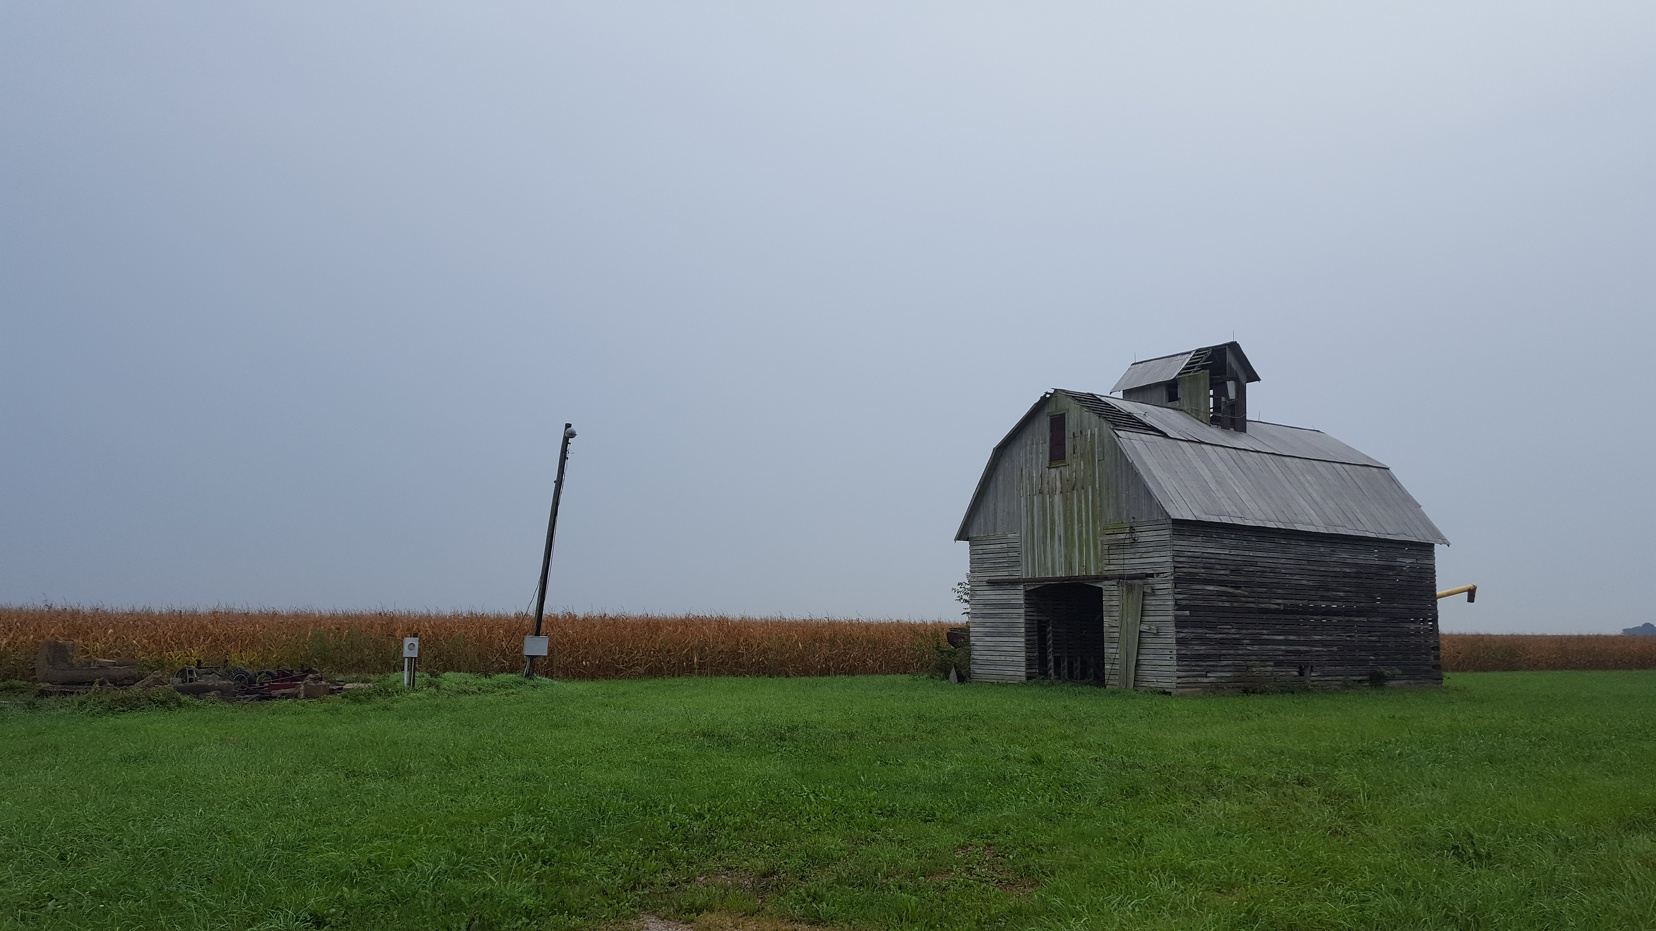 Britt and Nate live near a plethora of old barns. Even if it's raining, I'm totally a sucker for a nice, run down old building.